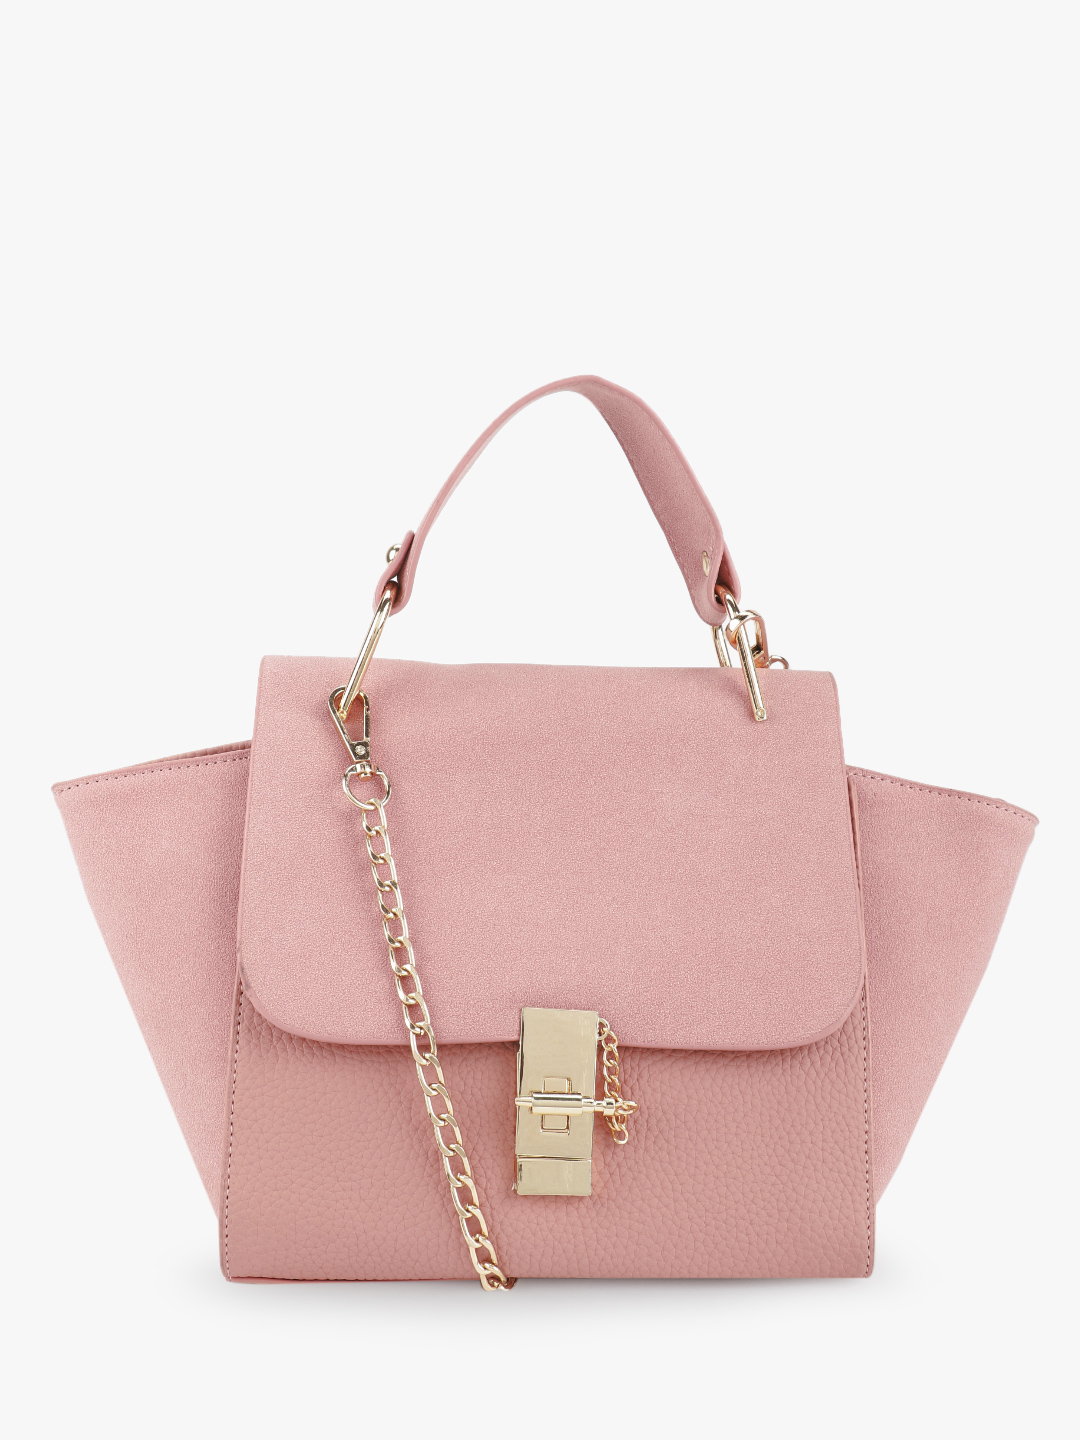 Style Fiesta Pink Two-Tone Satchel Bag 1